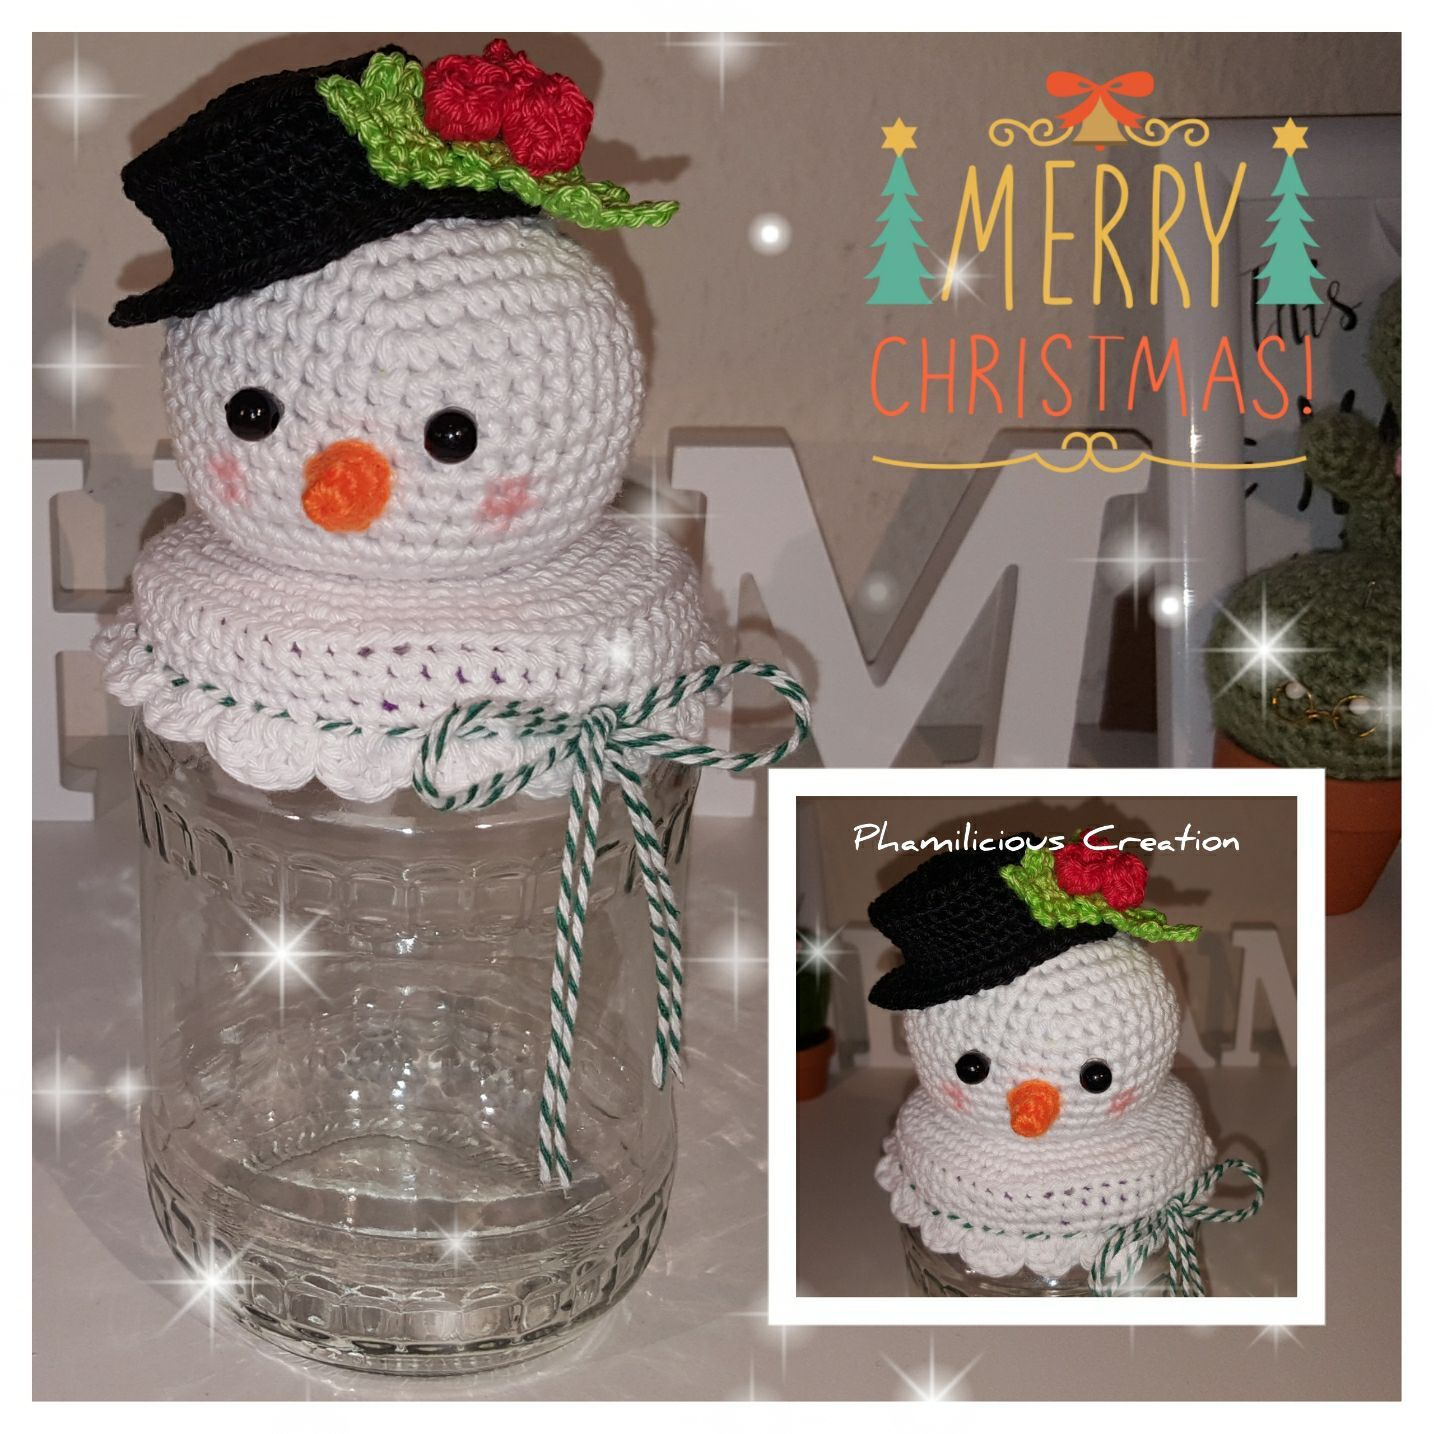 Christmas Crochet Jar Lid Cover Free Pattern Crochet Jar Covers Jar Lid Cover Christmas Crochet